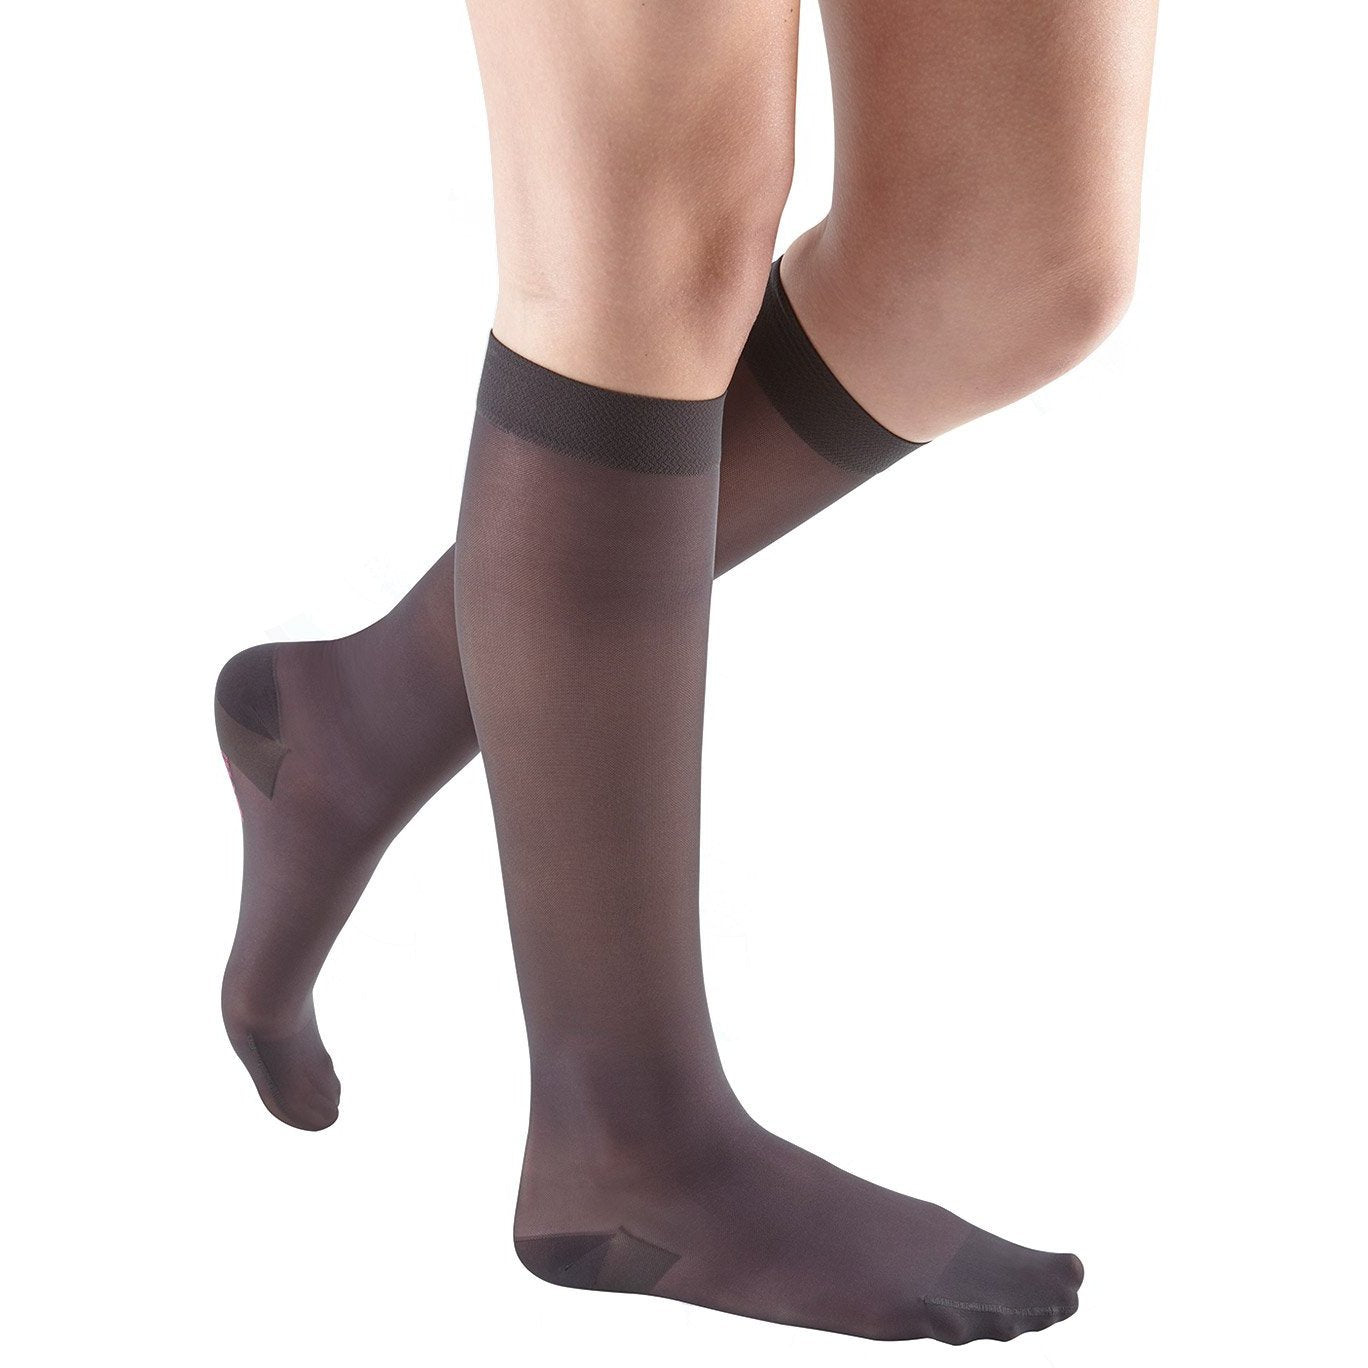 375d449460 Mediven Sheer and Soft X-Firm Compression Knee High 30-40mmHg ...